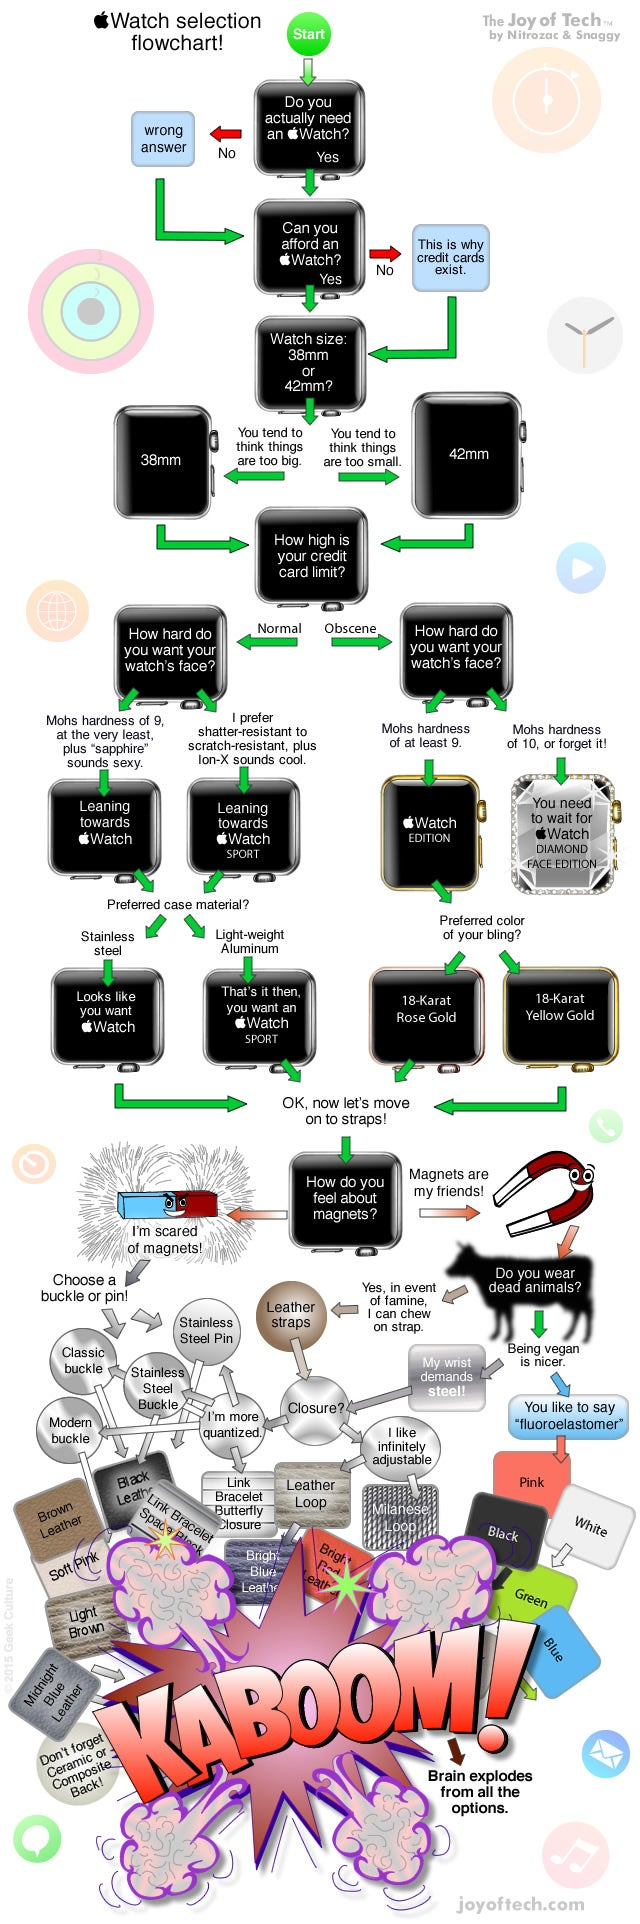 A Fun Flowchart to Help You Choose Which Apple Watch to Buy